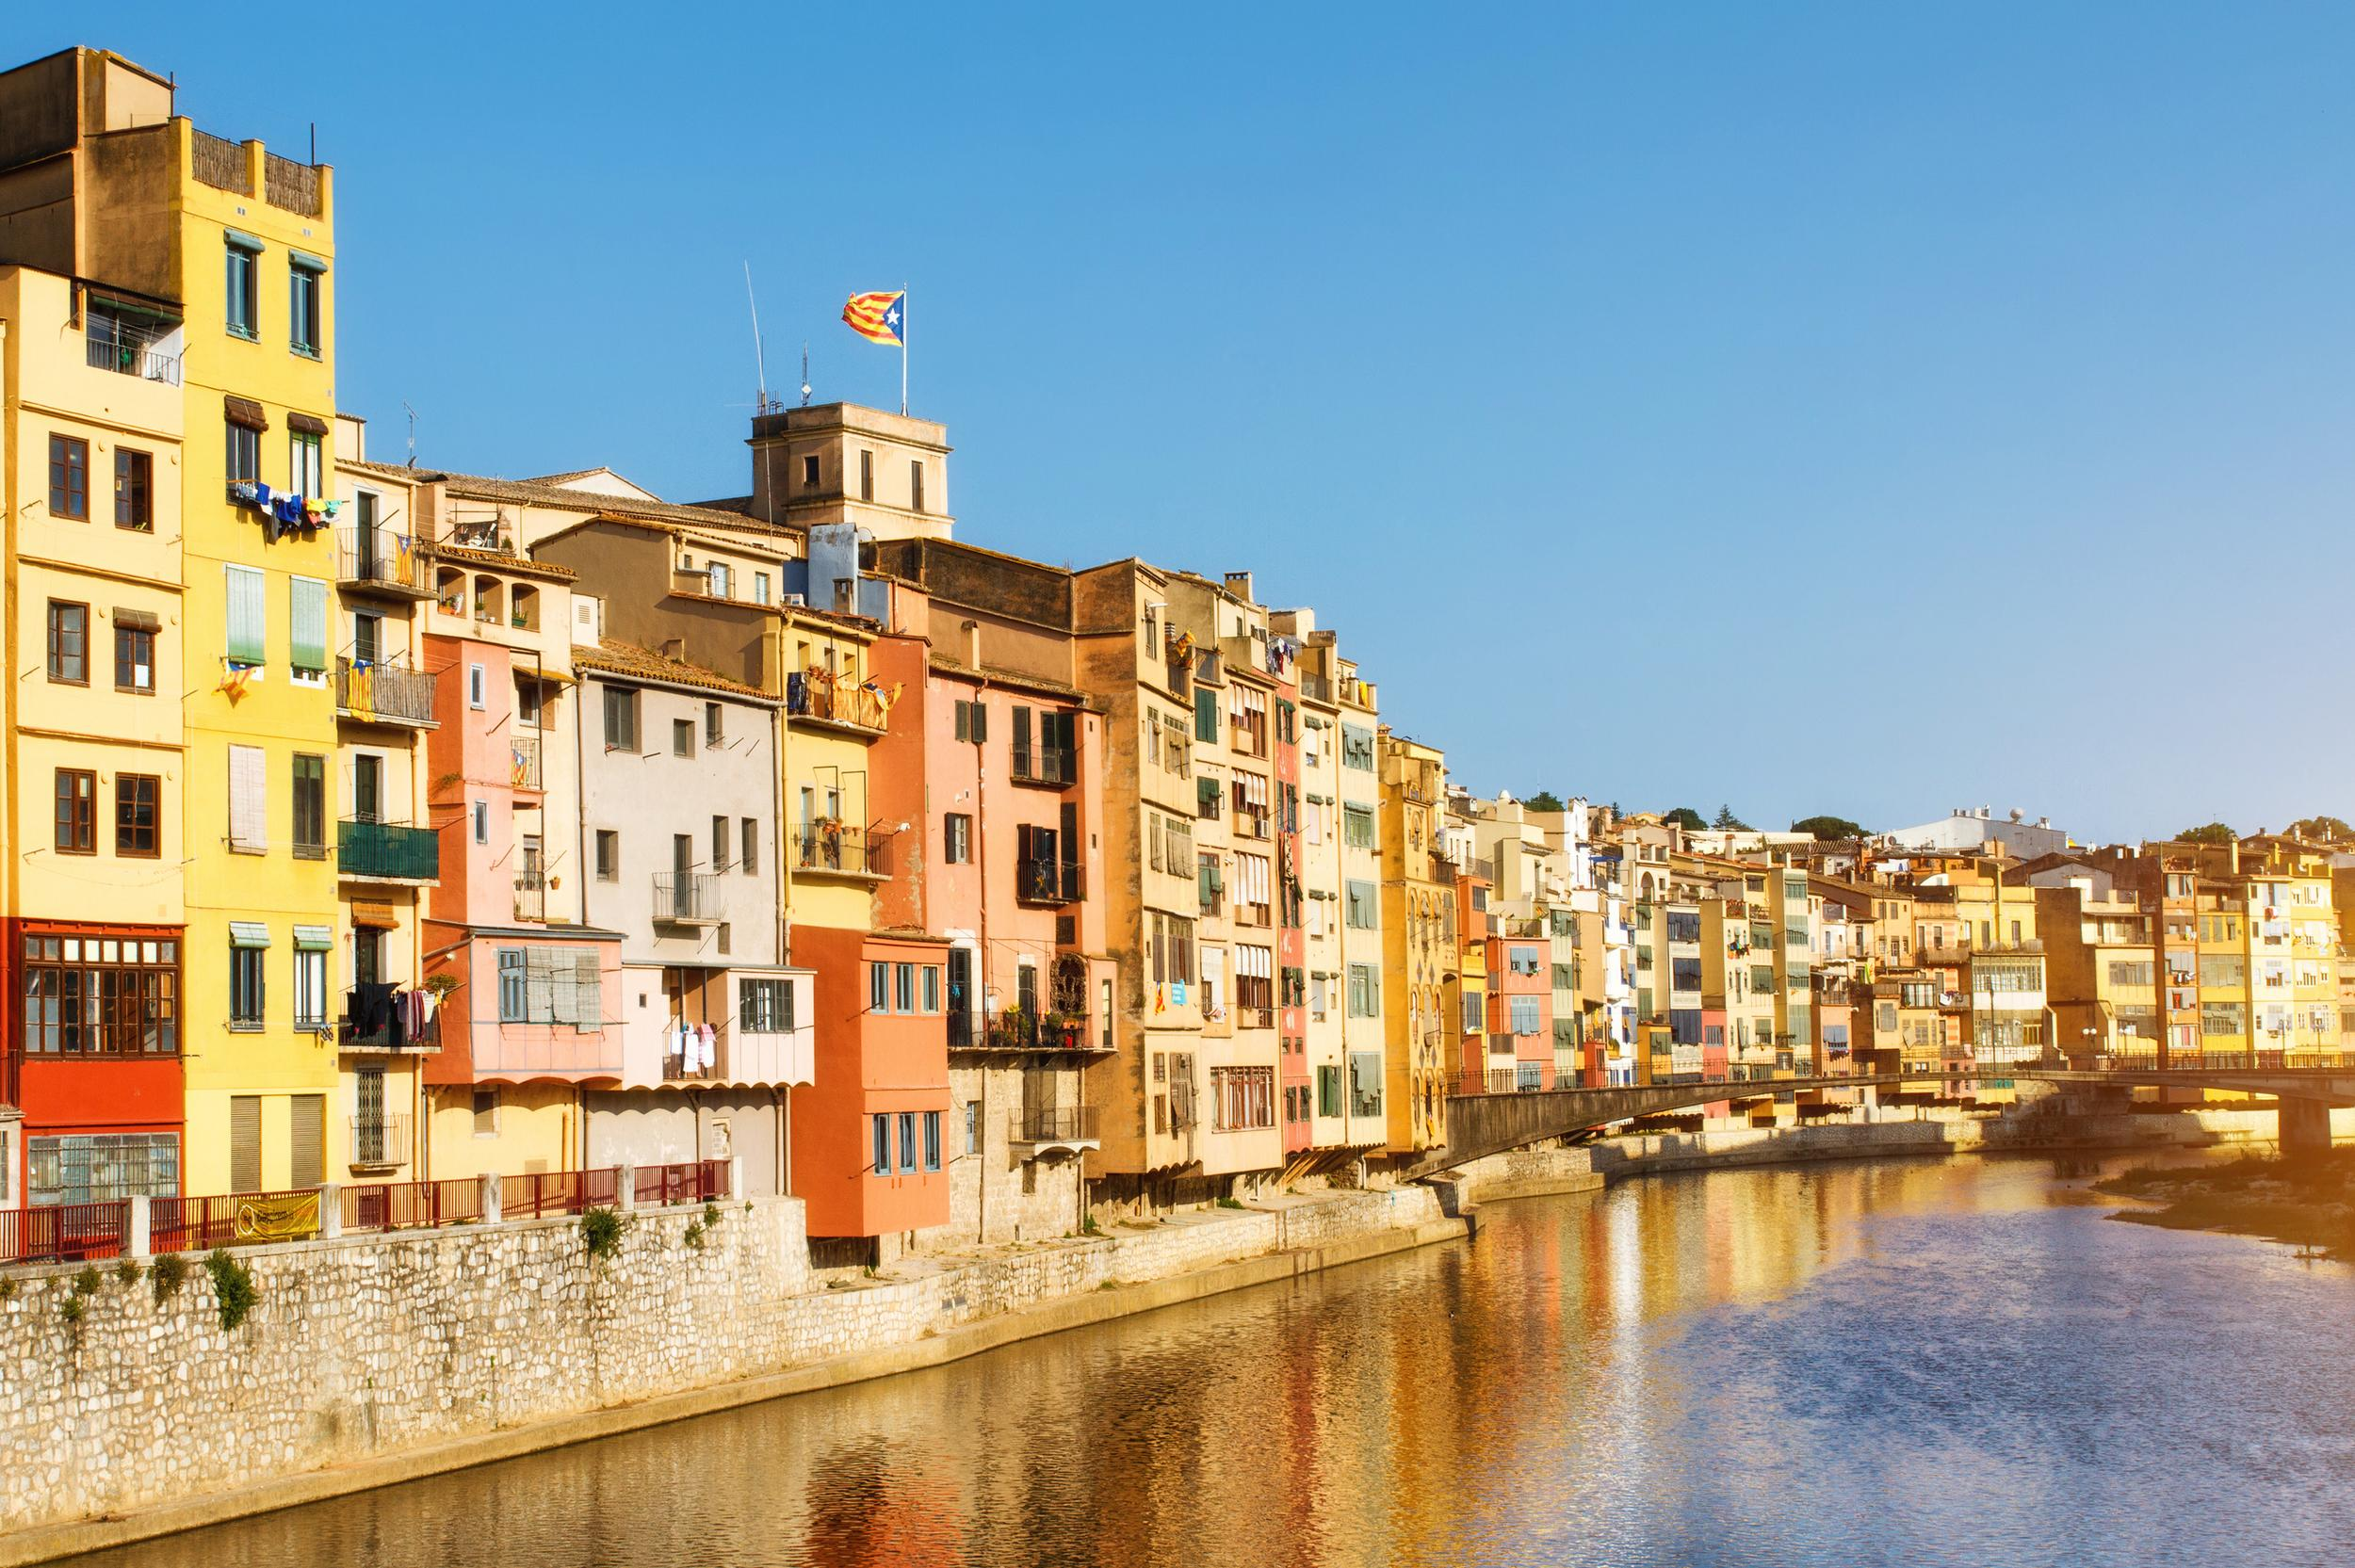 """<a href=""""http://www.jet2.com/flights/spain/girona"""" target=""""_blank"""">Jet2.com</a> will launch twice weekly departures from Glasgow to Girona between 20 May and 19 September 2016. The flights start at £42 one way. Nestled in the northeastern corner of Spain, Girona is a classic Catalan city with connections to the Costa Brava. A city that wears its history on its sleeve, Girona has grand towers and city walls that encircle the Old Town."""